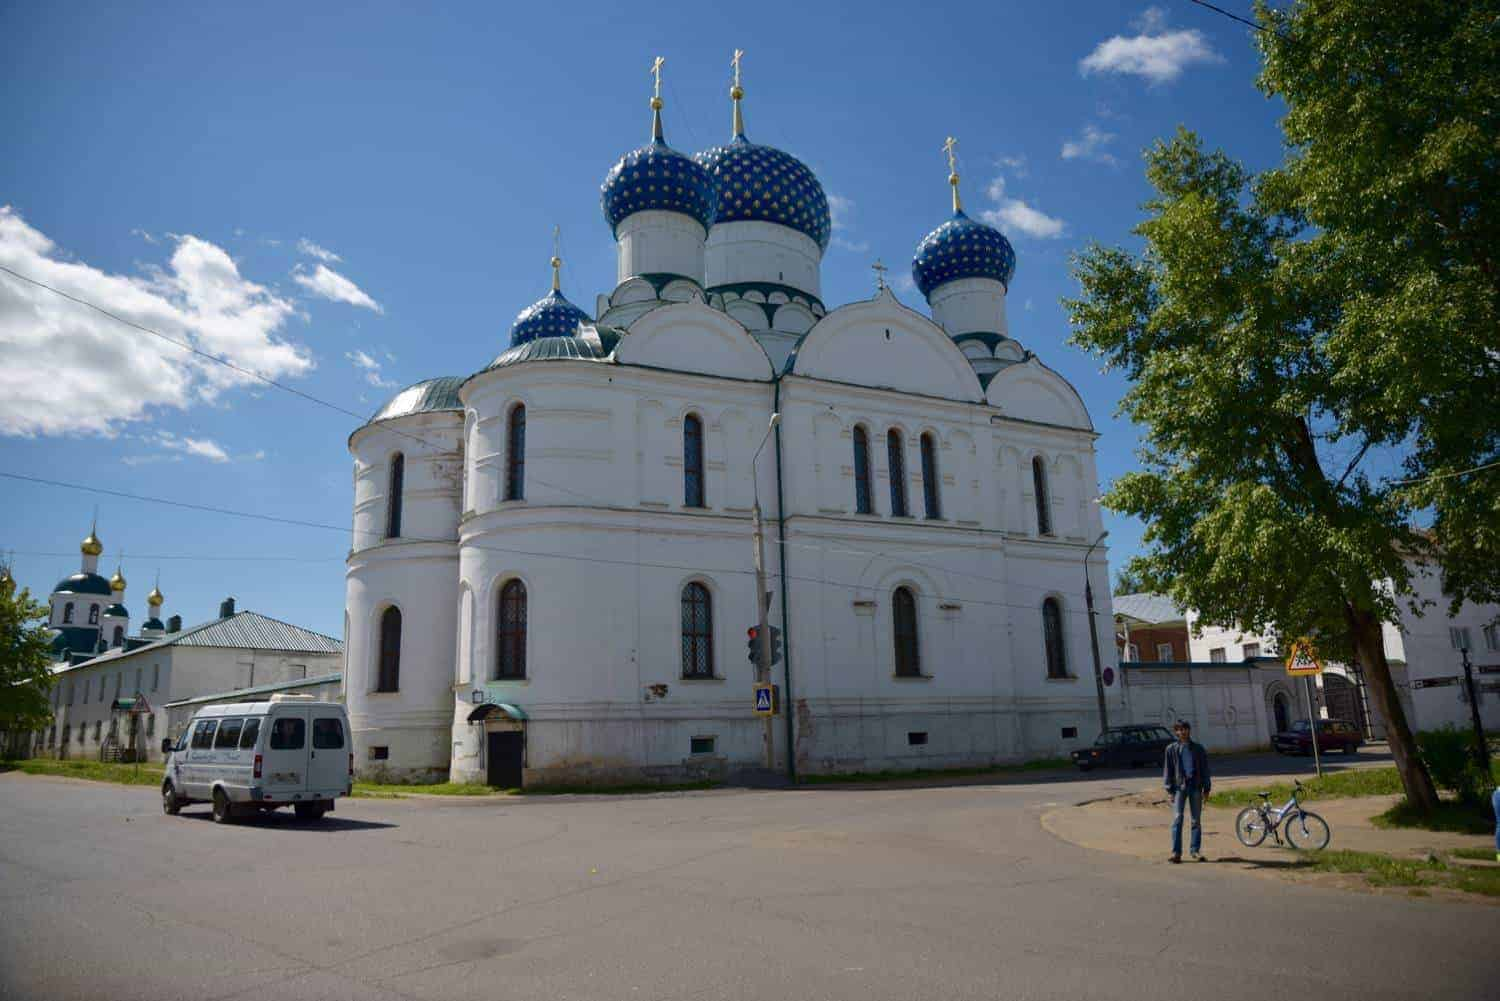 white church with 3 blue domes in Uglich Russia. Best things to do in russia are from st petersburg to moscow